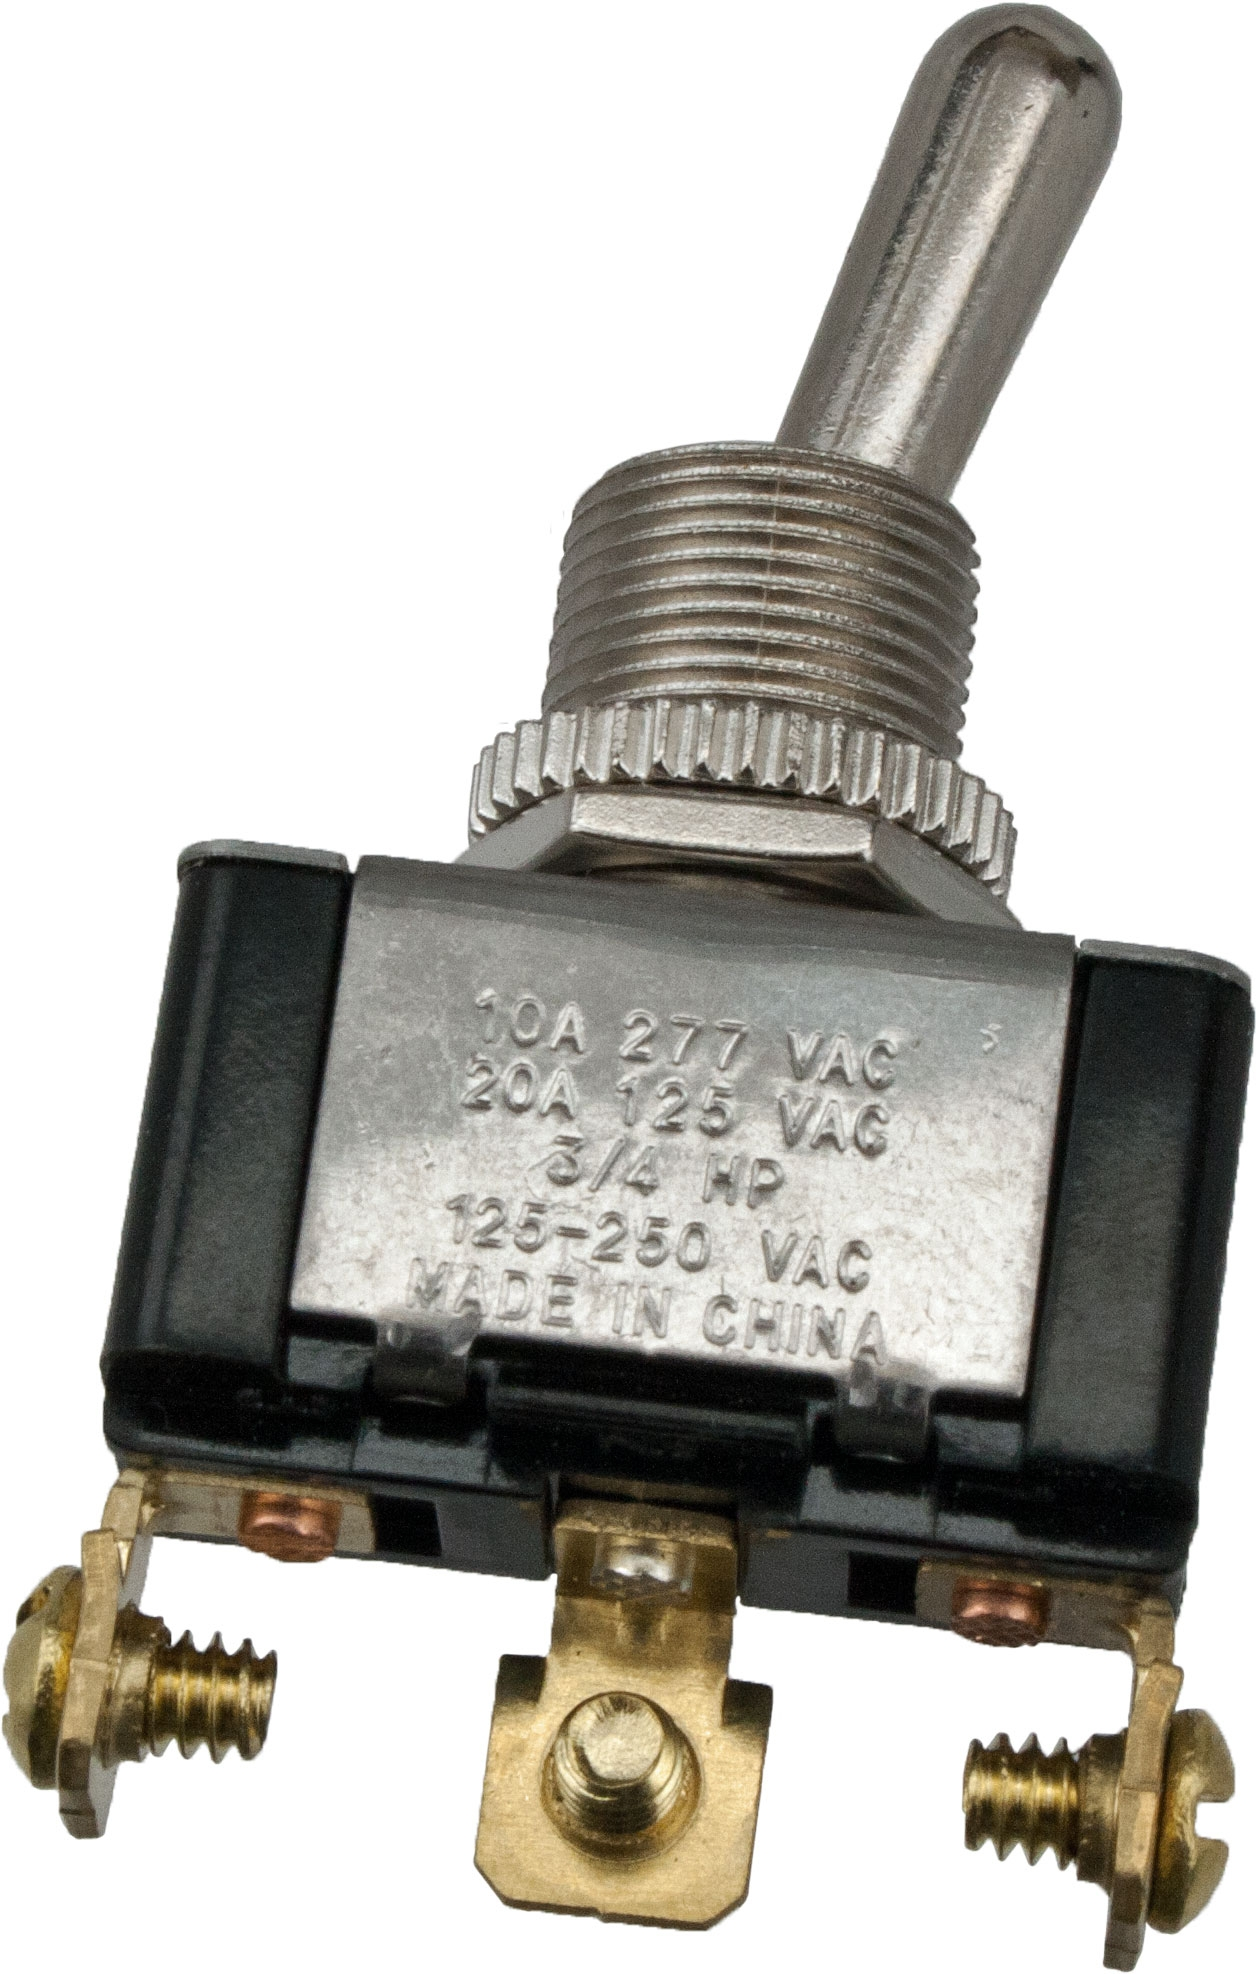 3 Screw Terminal Toggle Switch On Spdt 765054 Elecdirect Switches Specialty Circuit Dpdt